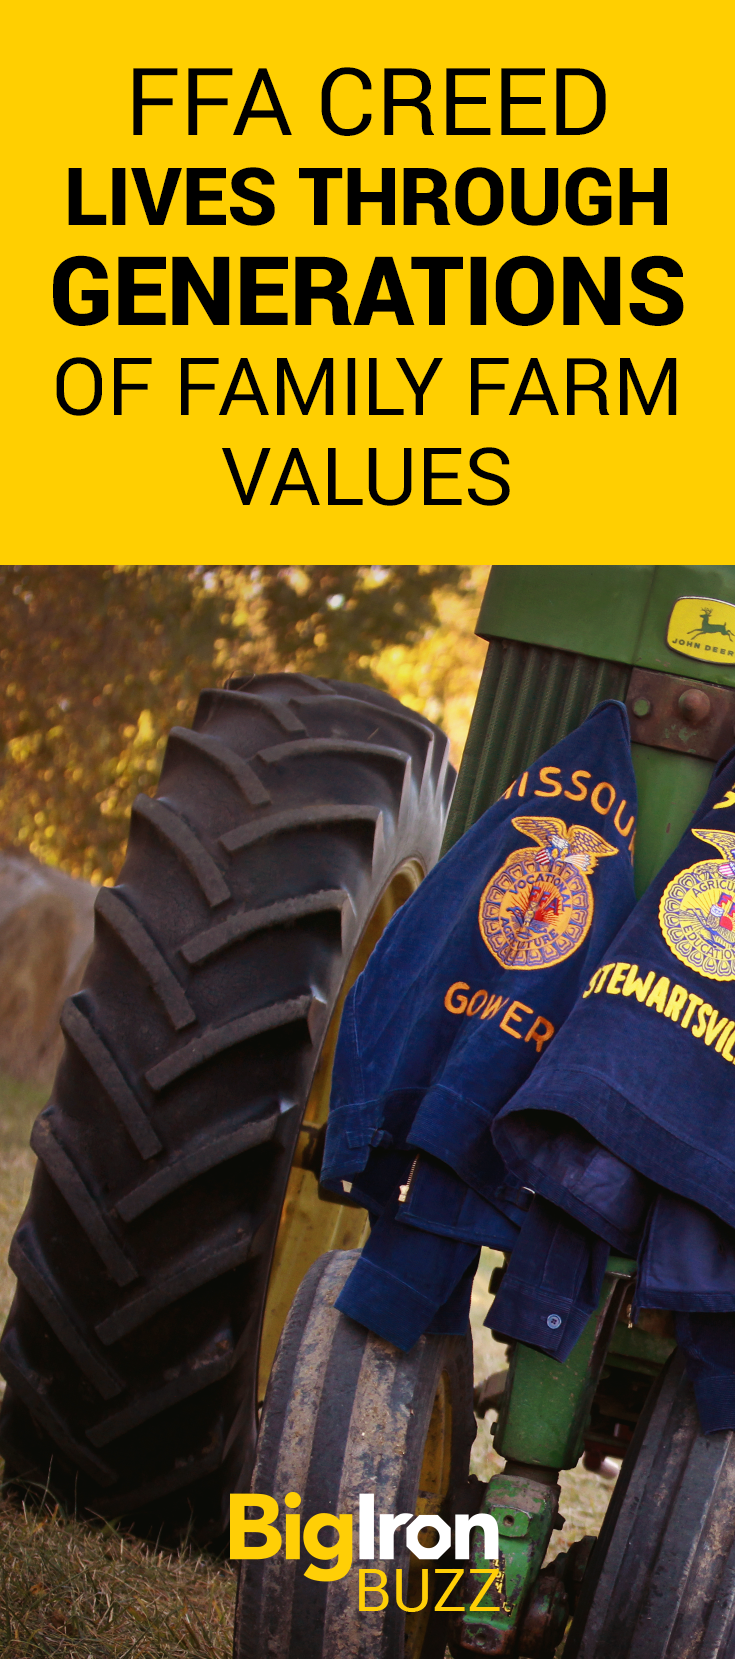 """""""I believe in the future of agriculture, with a faith born not of words but of deeds - achievements won by the present and past generations of agriculturists."""" FFA Member Cierra Keller and her grandfather Gene share their story of handing down strong family farm values."""